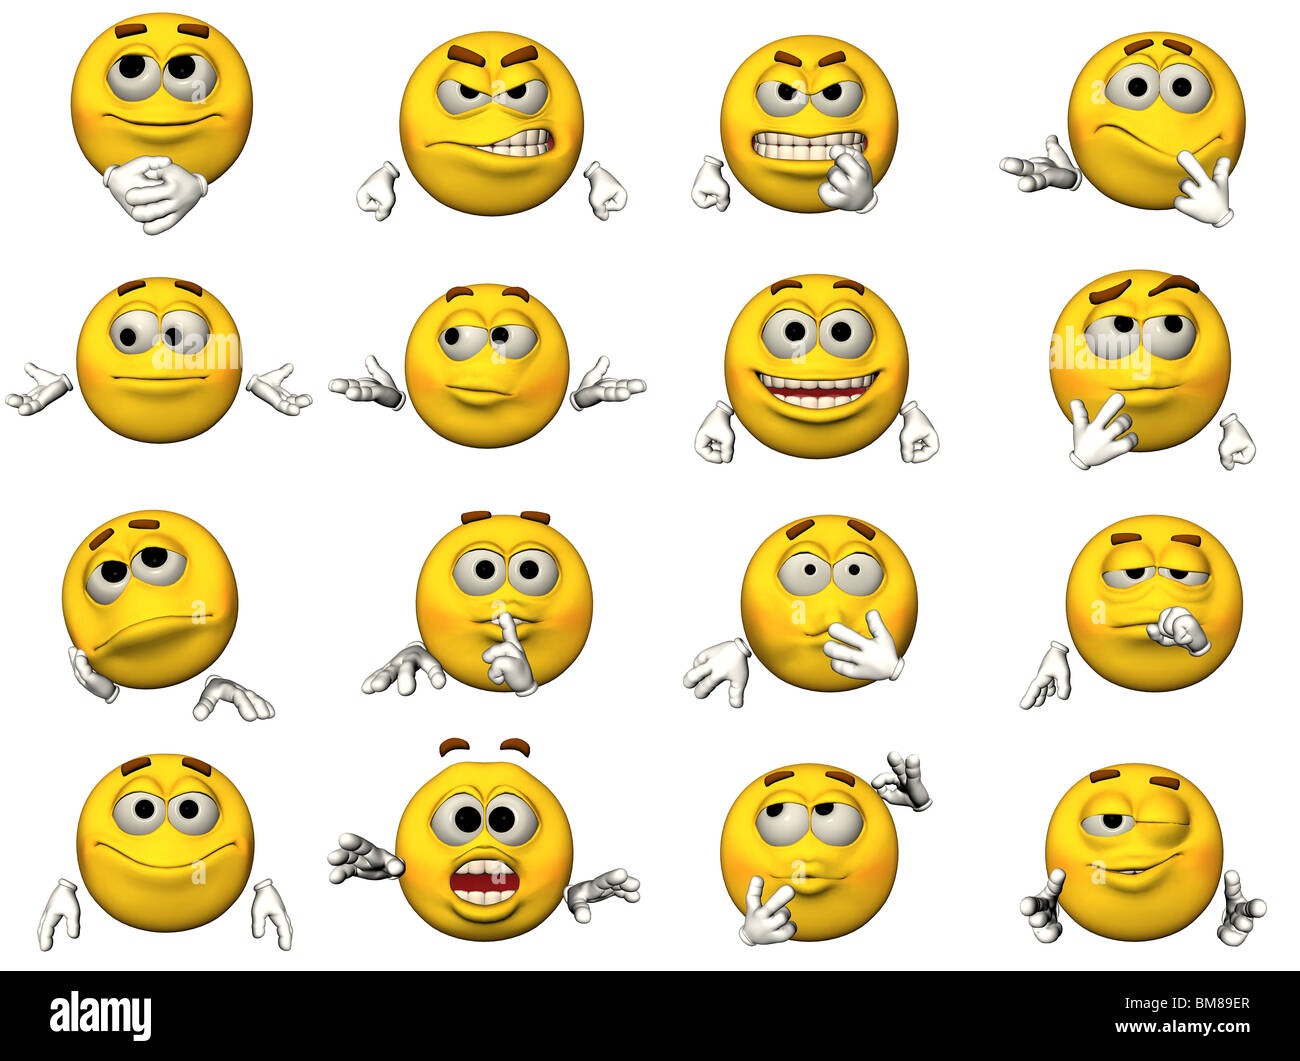 16 isolated illustrations of emoticons - Stock Image